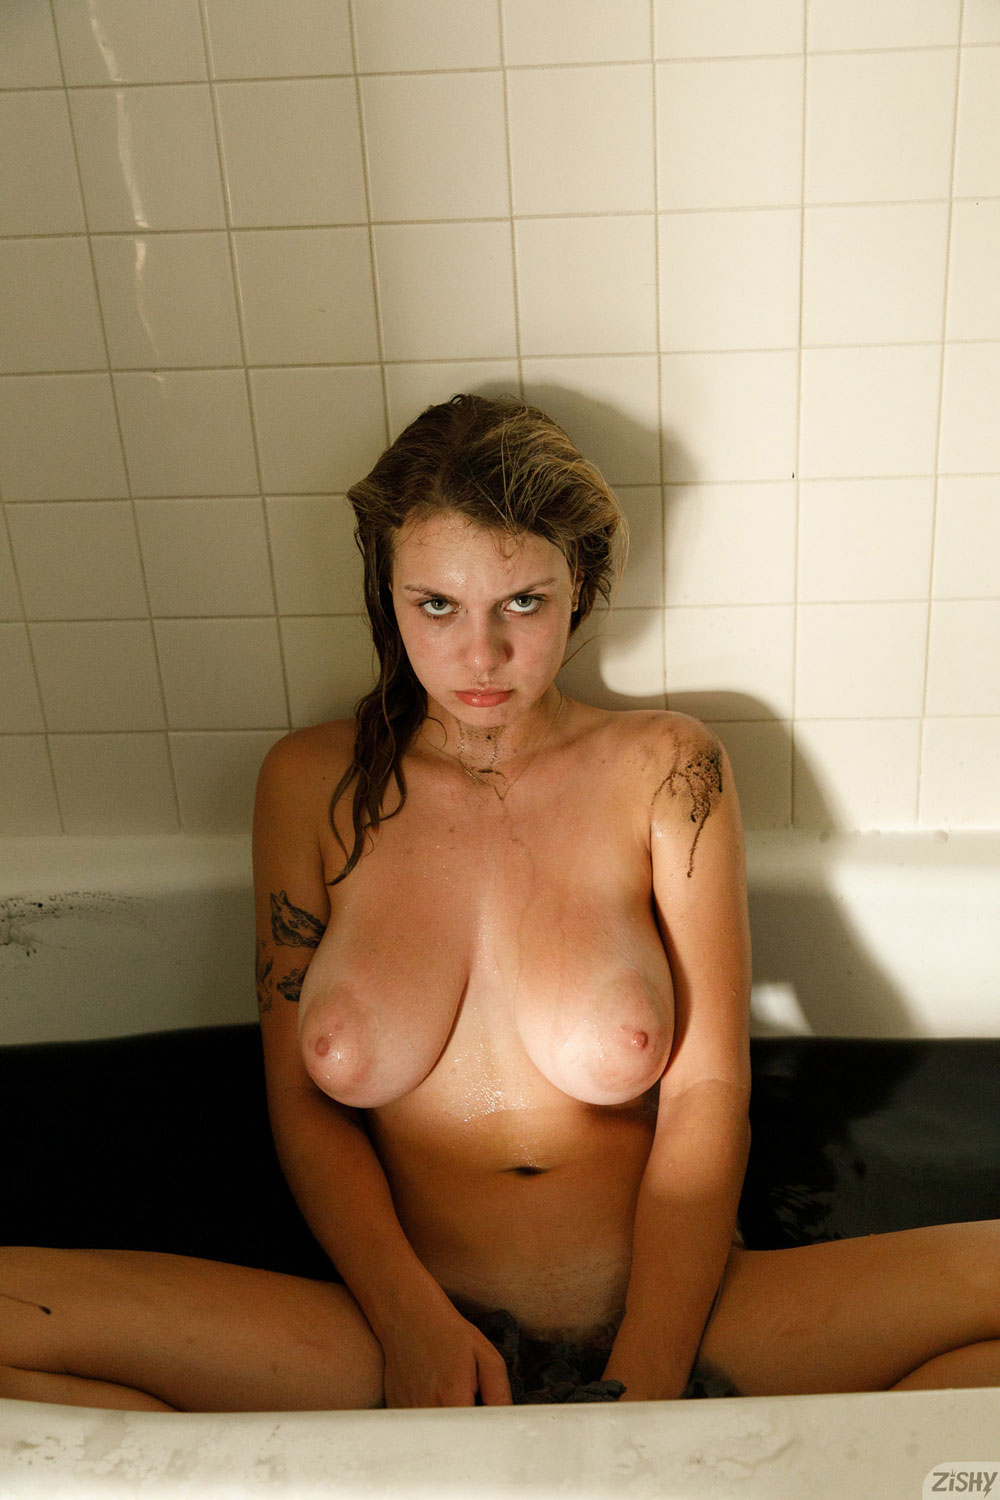 Zishy: Gabbie Carter with a Face Mask 11